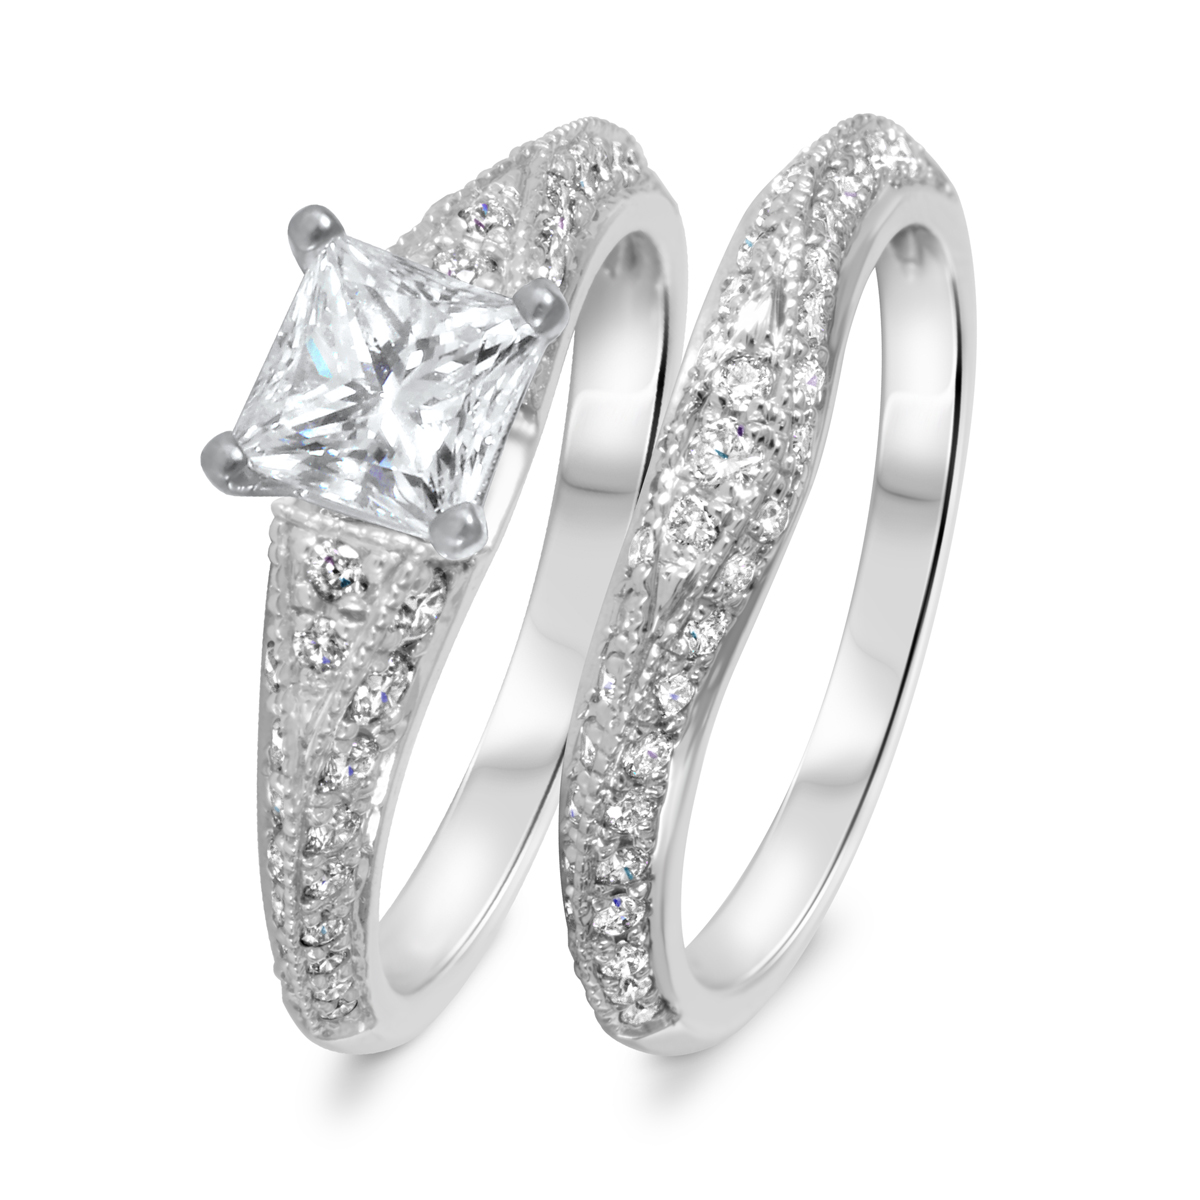 1 7/8 CT. T.W. Diamond Women's Bridal Wedding Ring Set 10K White Gold